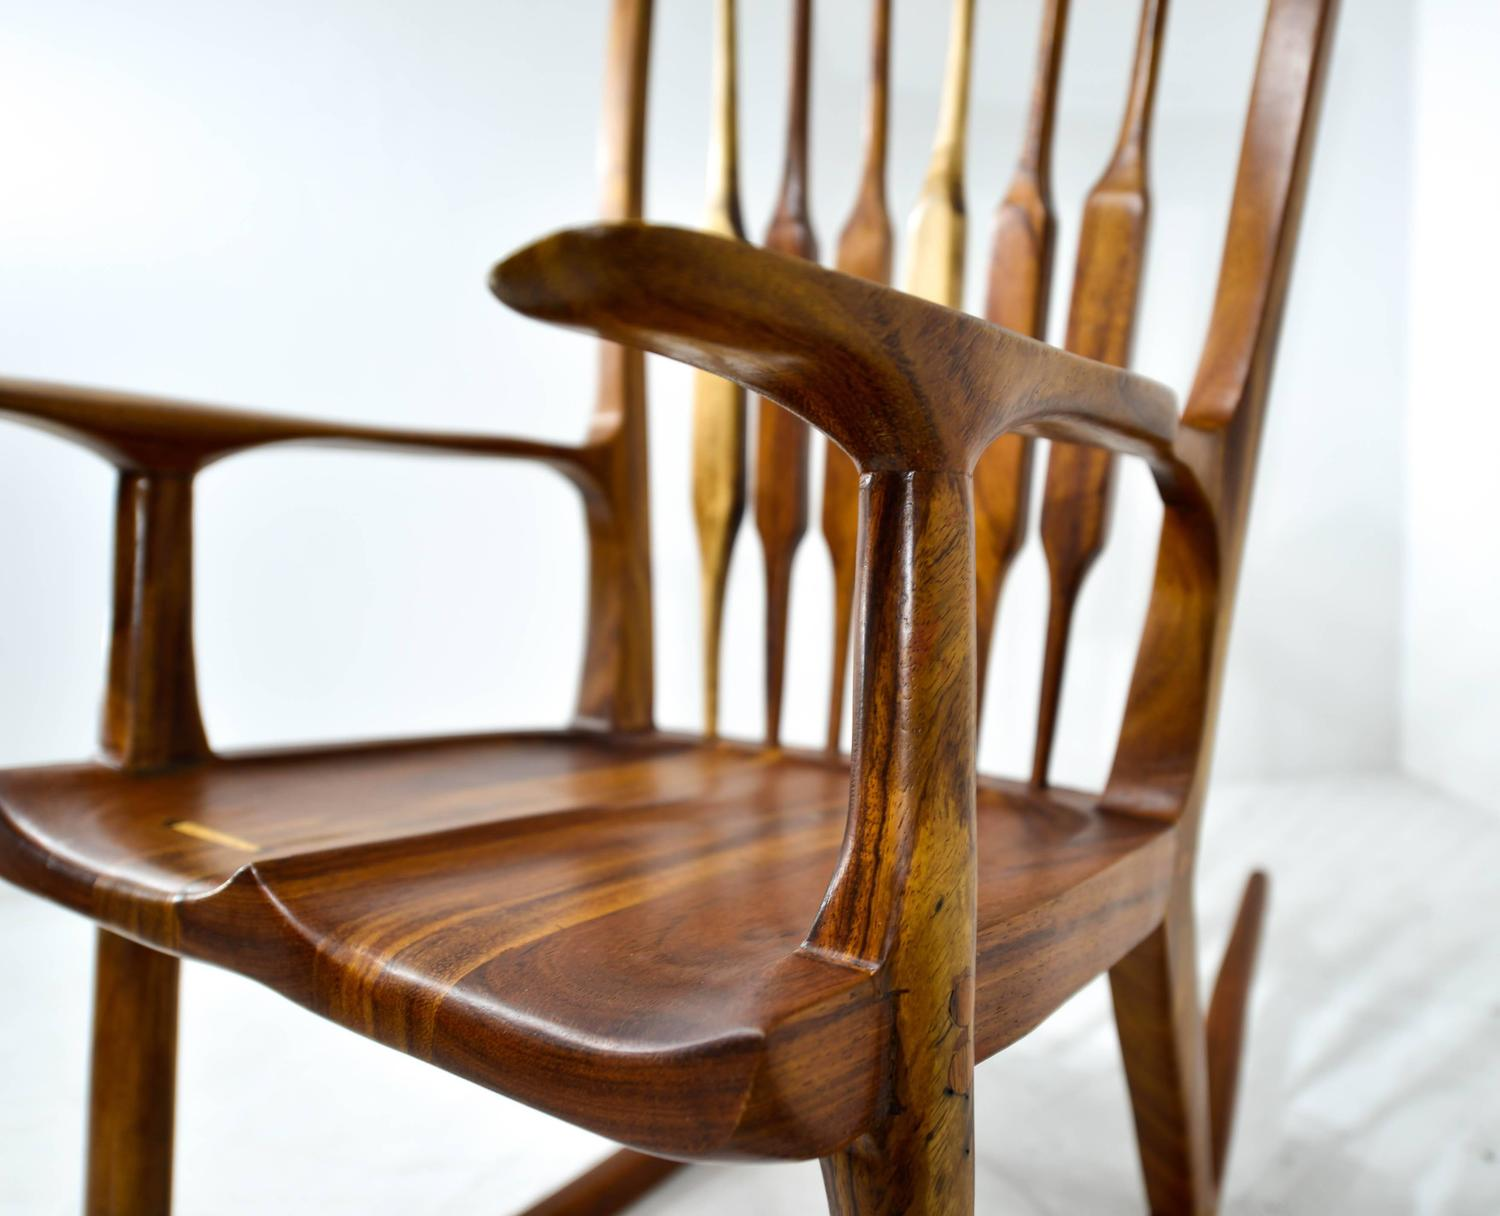 Rocking Chair, in the Manner of Sam Maloof For Sale at 1stdibs